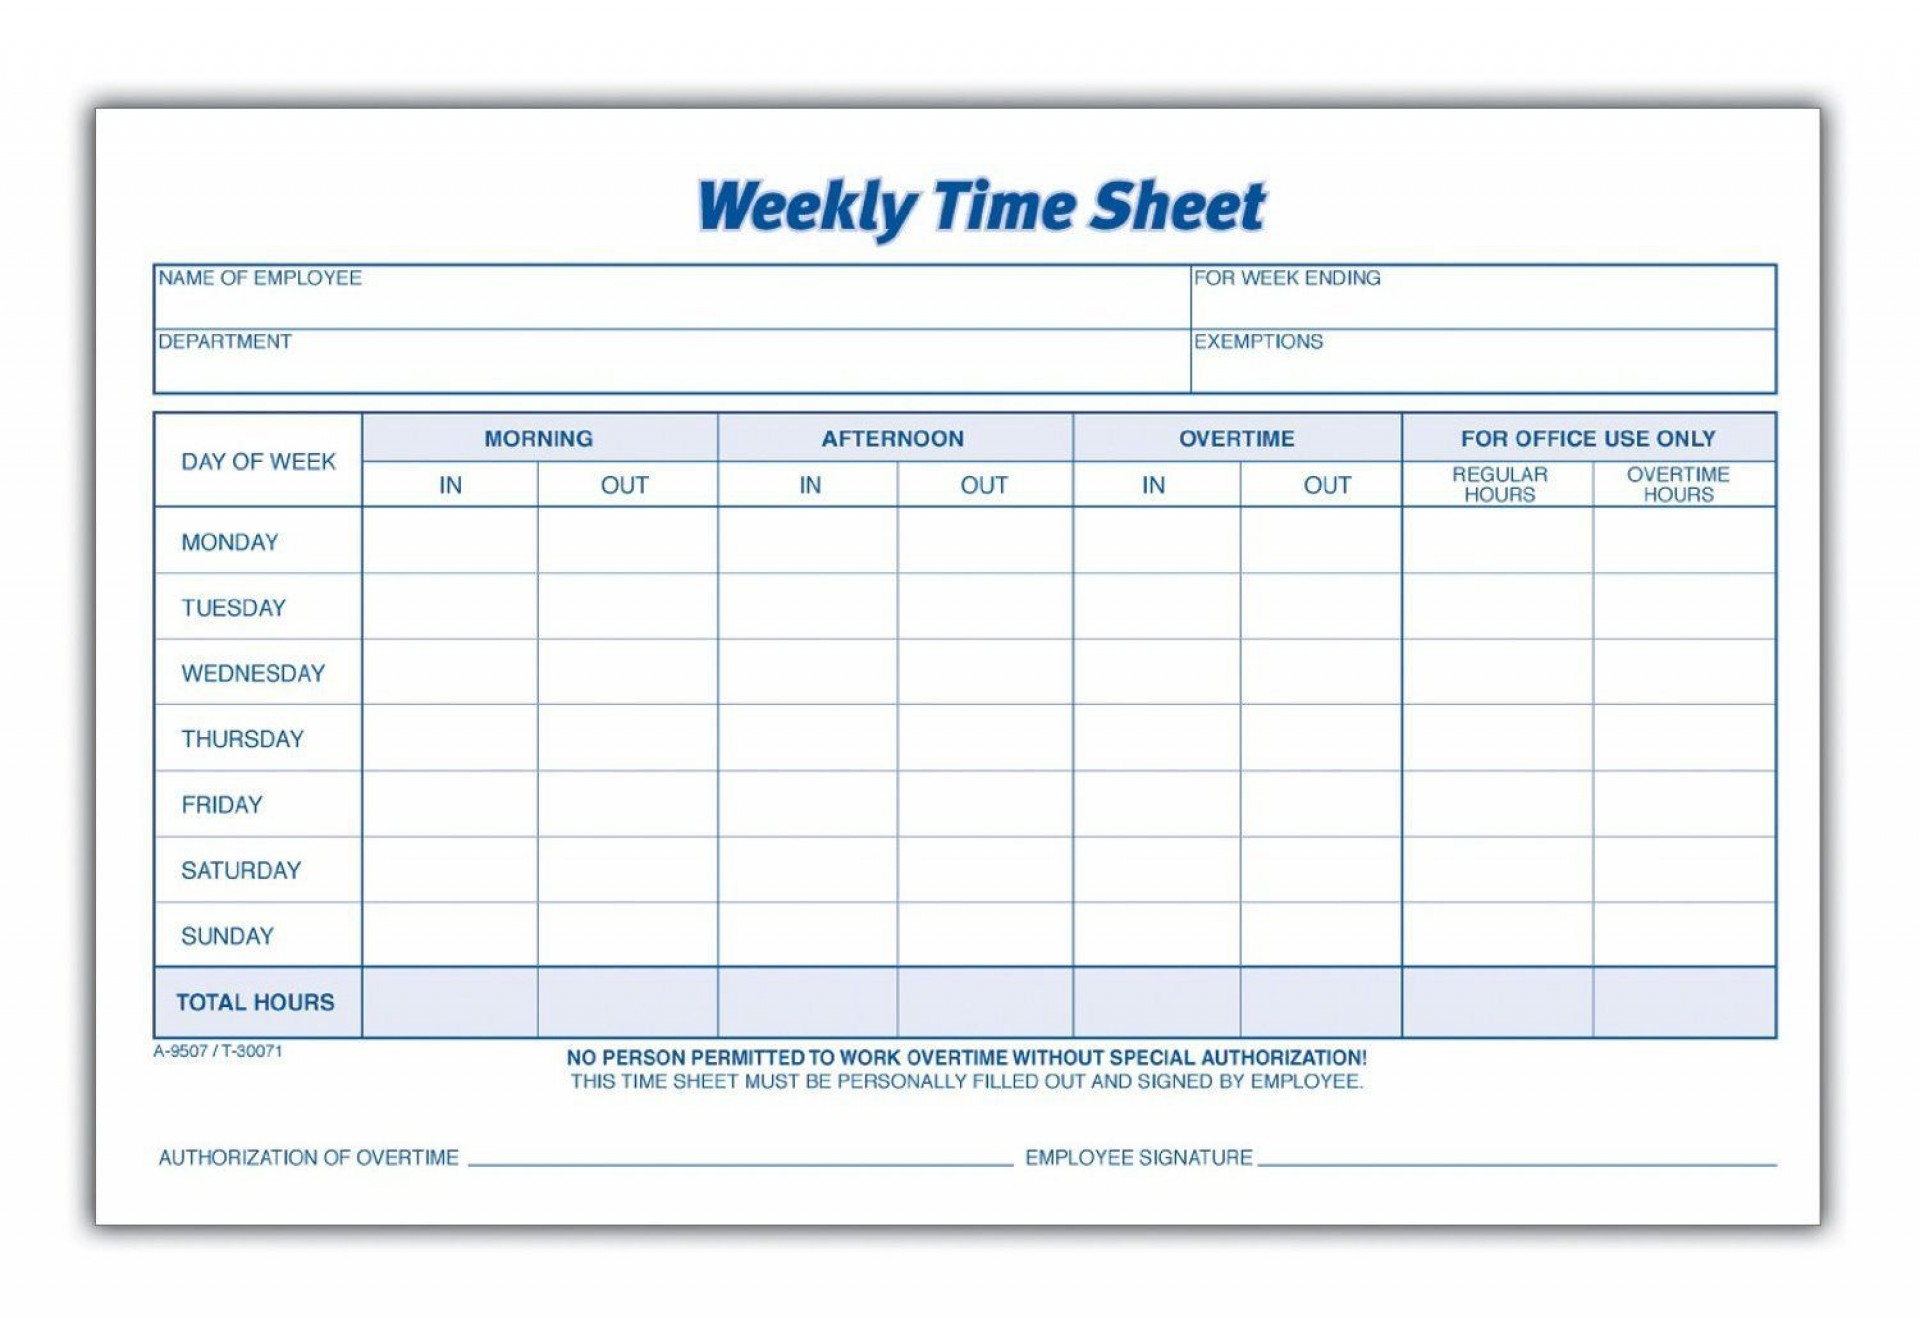 000 Unusual Employee Time Card Spreadsheet High Definition  Sheet Template Free Monthly Excel1920